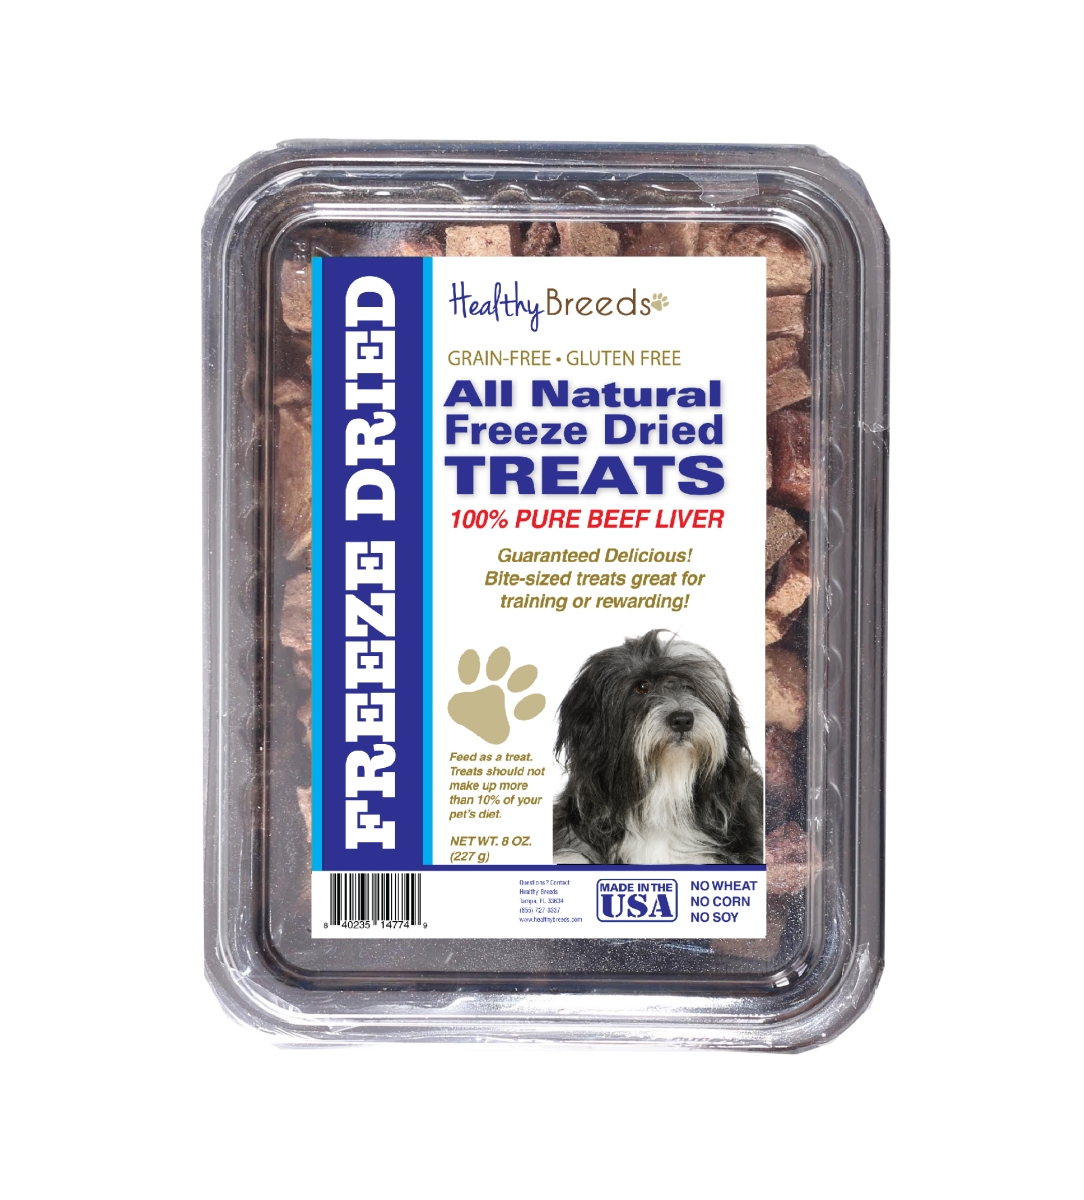 Healthy Breeds 840235147565 10 oz Lhasa Apso All Natural Freeze Dried Treats Beef Liver